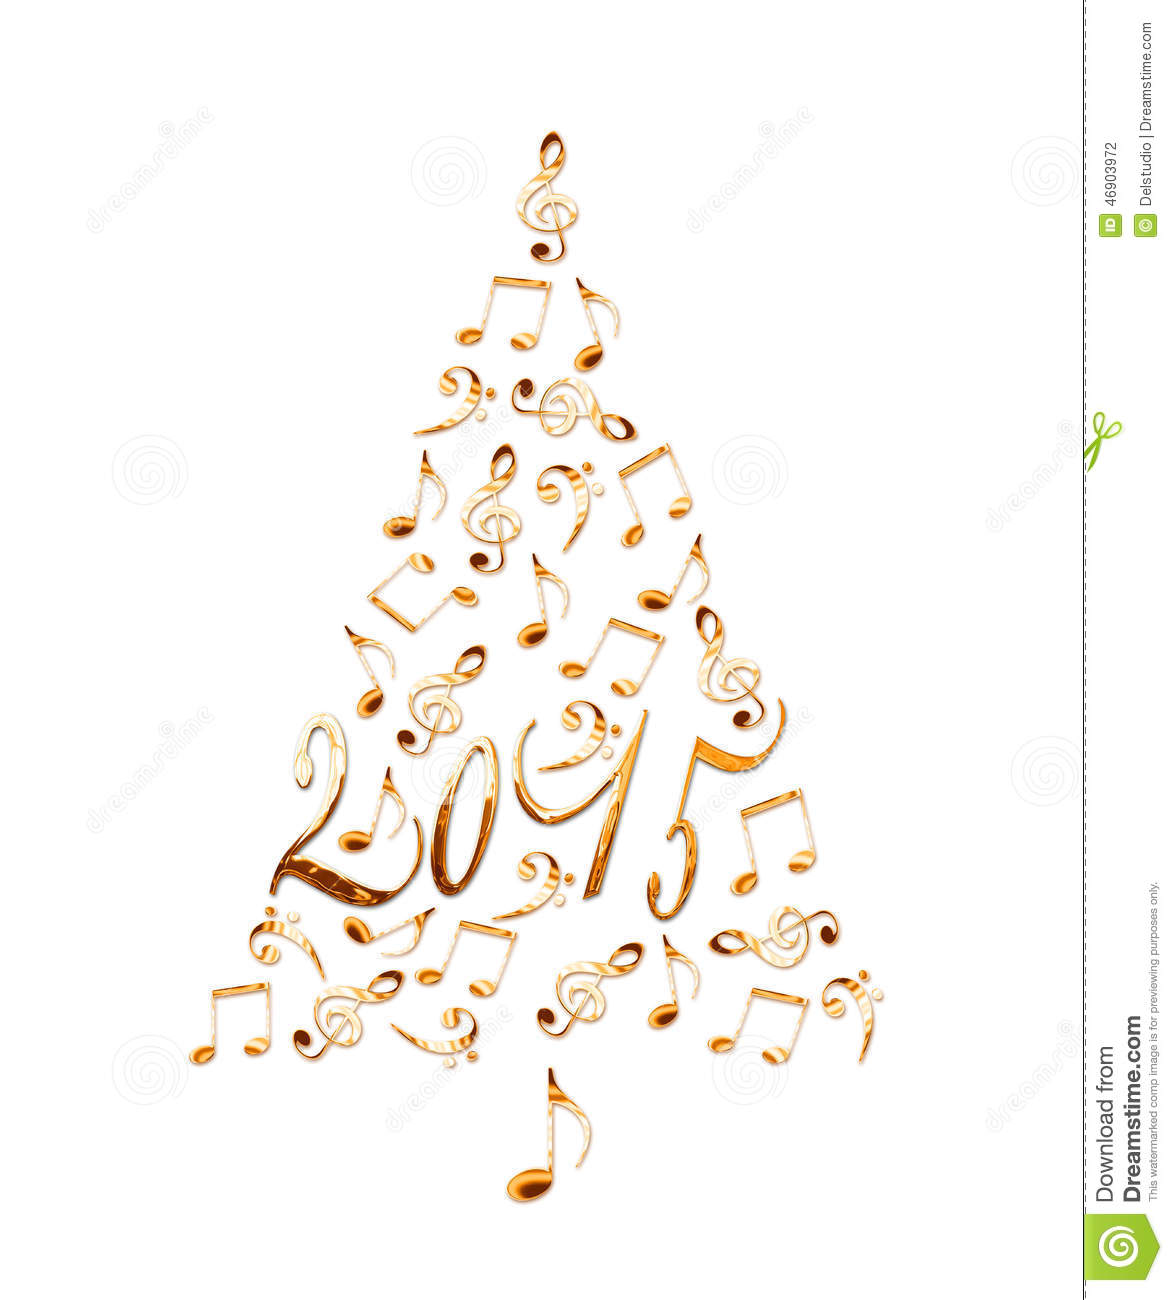 download 2015 christmas tree with golden metal musical notes stock photo image of signs - Metal Christmas Music